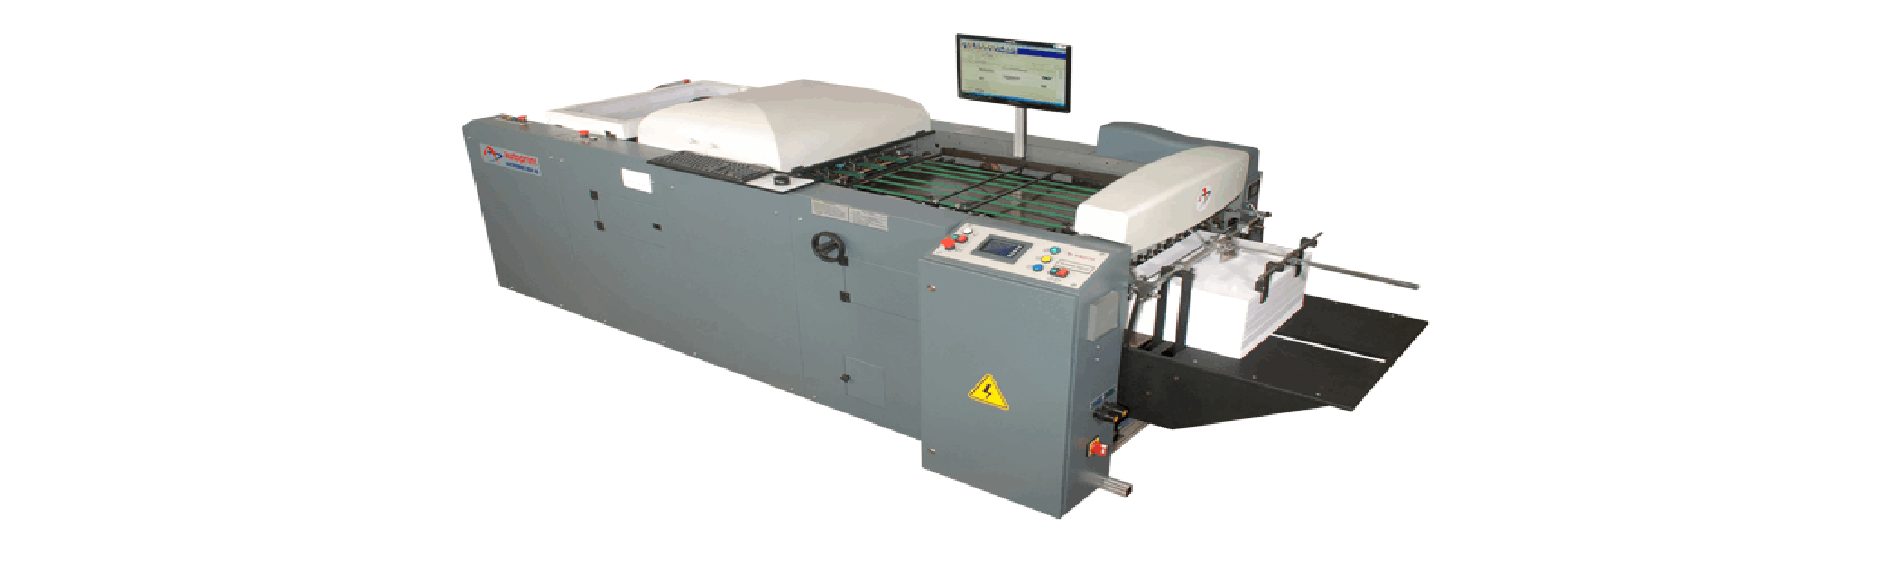 Autoprint Reckoner VDP 65